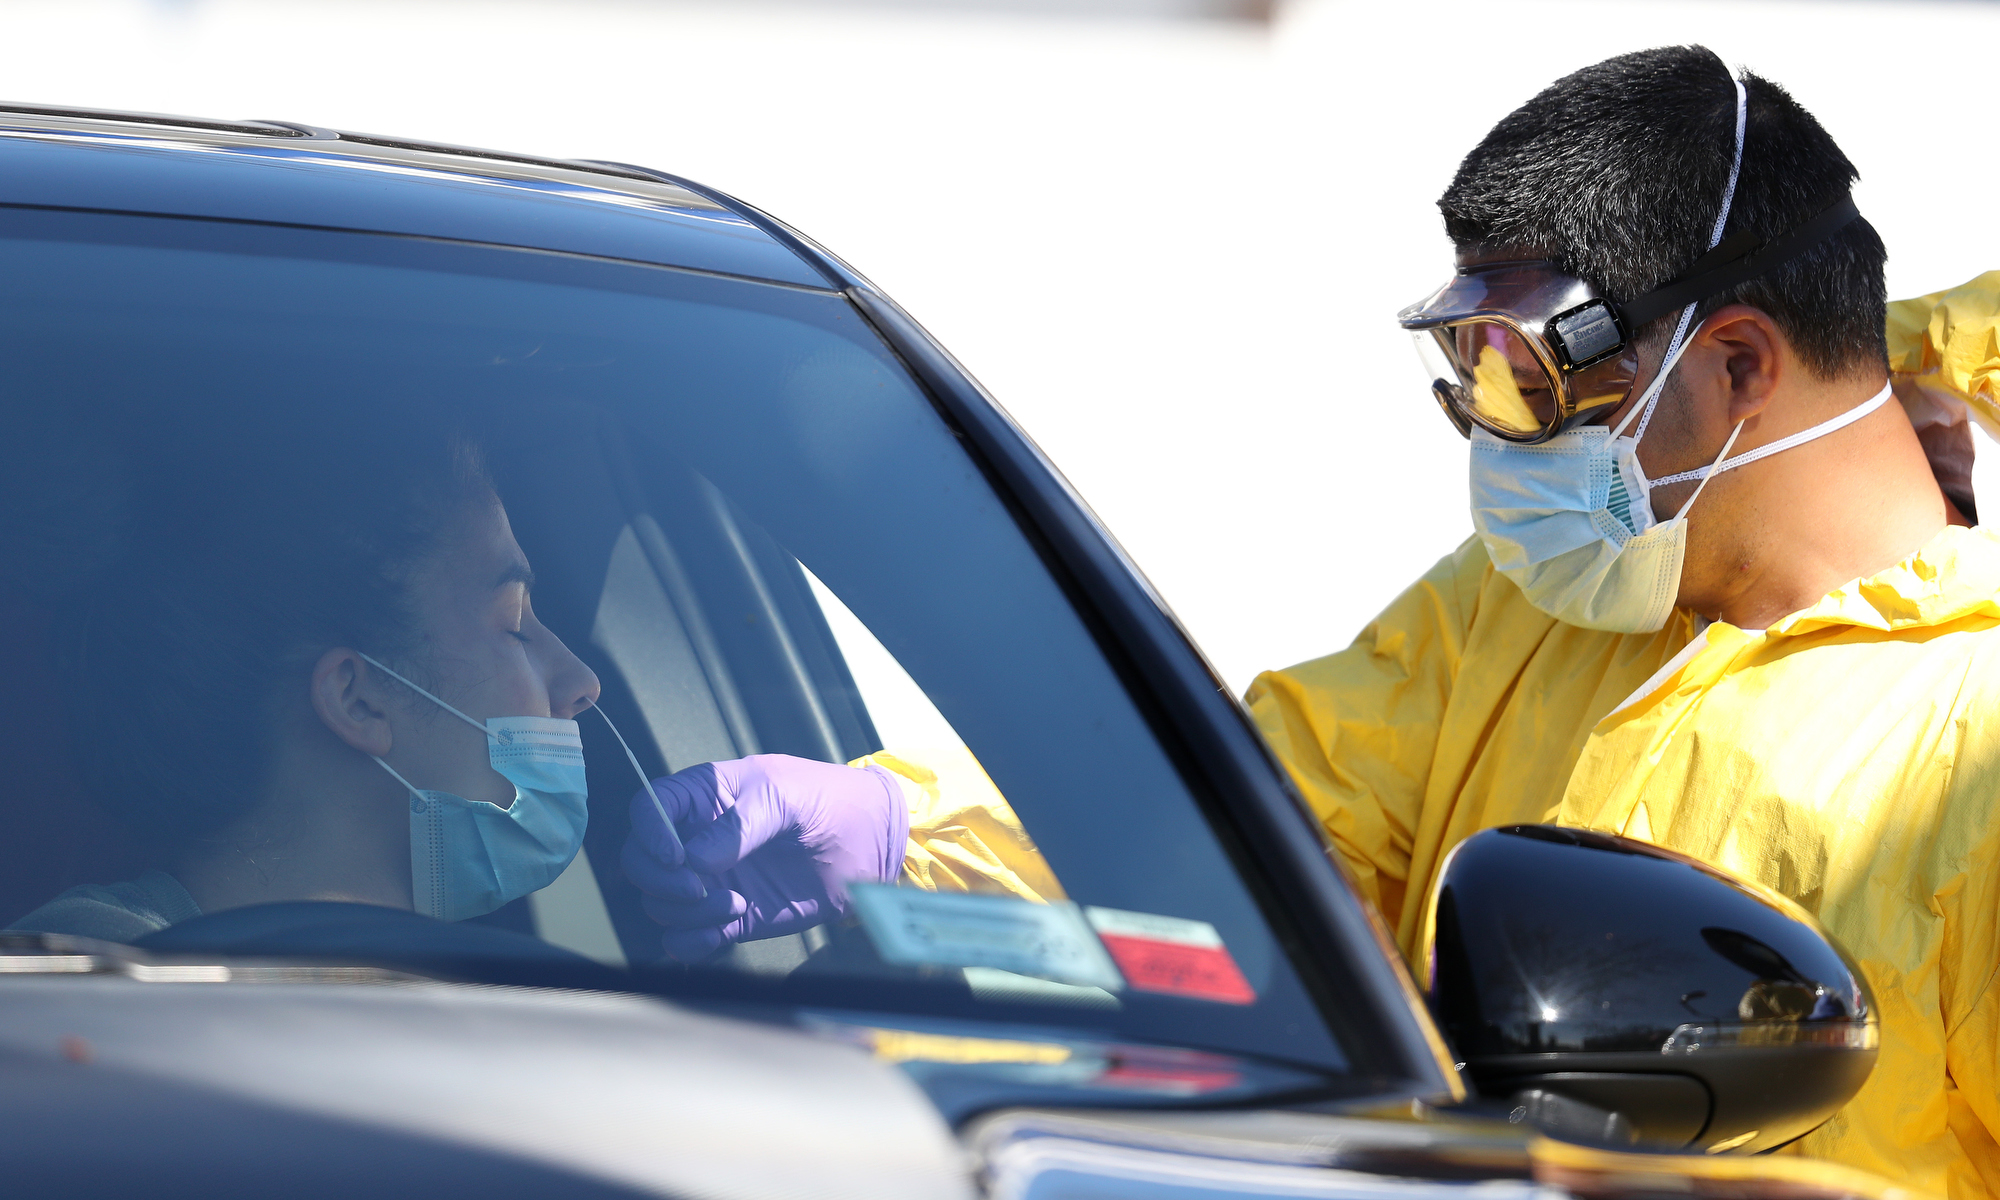 A medical professional administers a coronavirus test at a drive-thru coronavirus testing site run by  ProHealth Care on April 06, 2020 in Jericho, New York. The World Health Organization declared coronavirus (COVID-19) a global pandemic on March 11th.